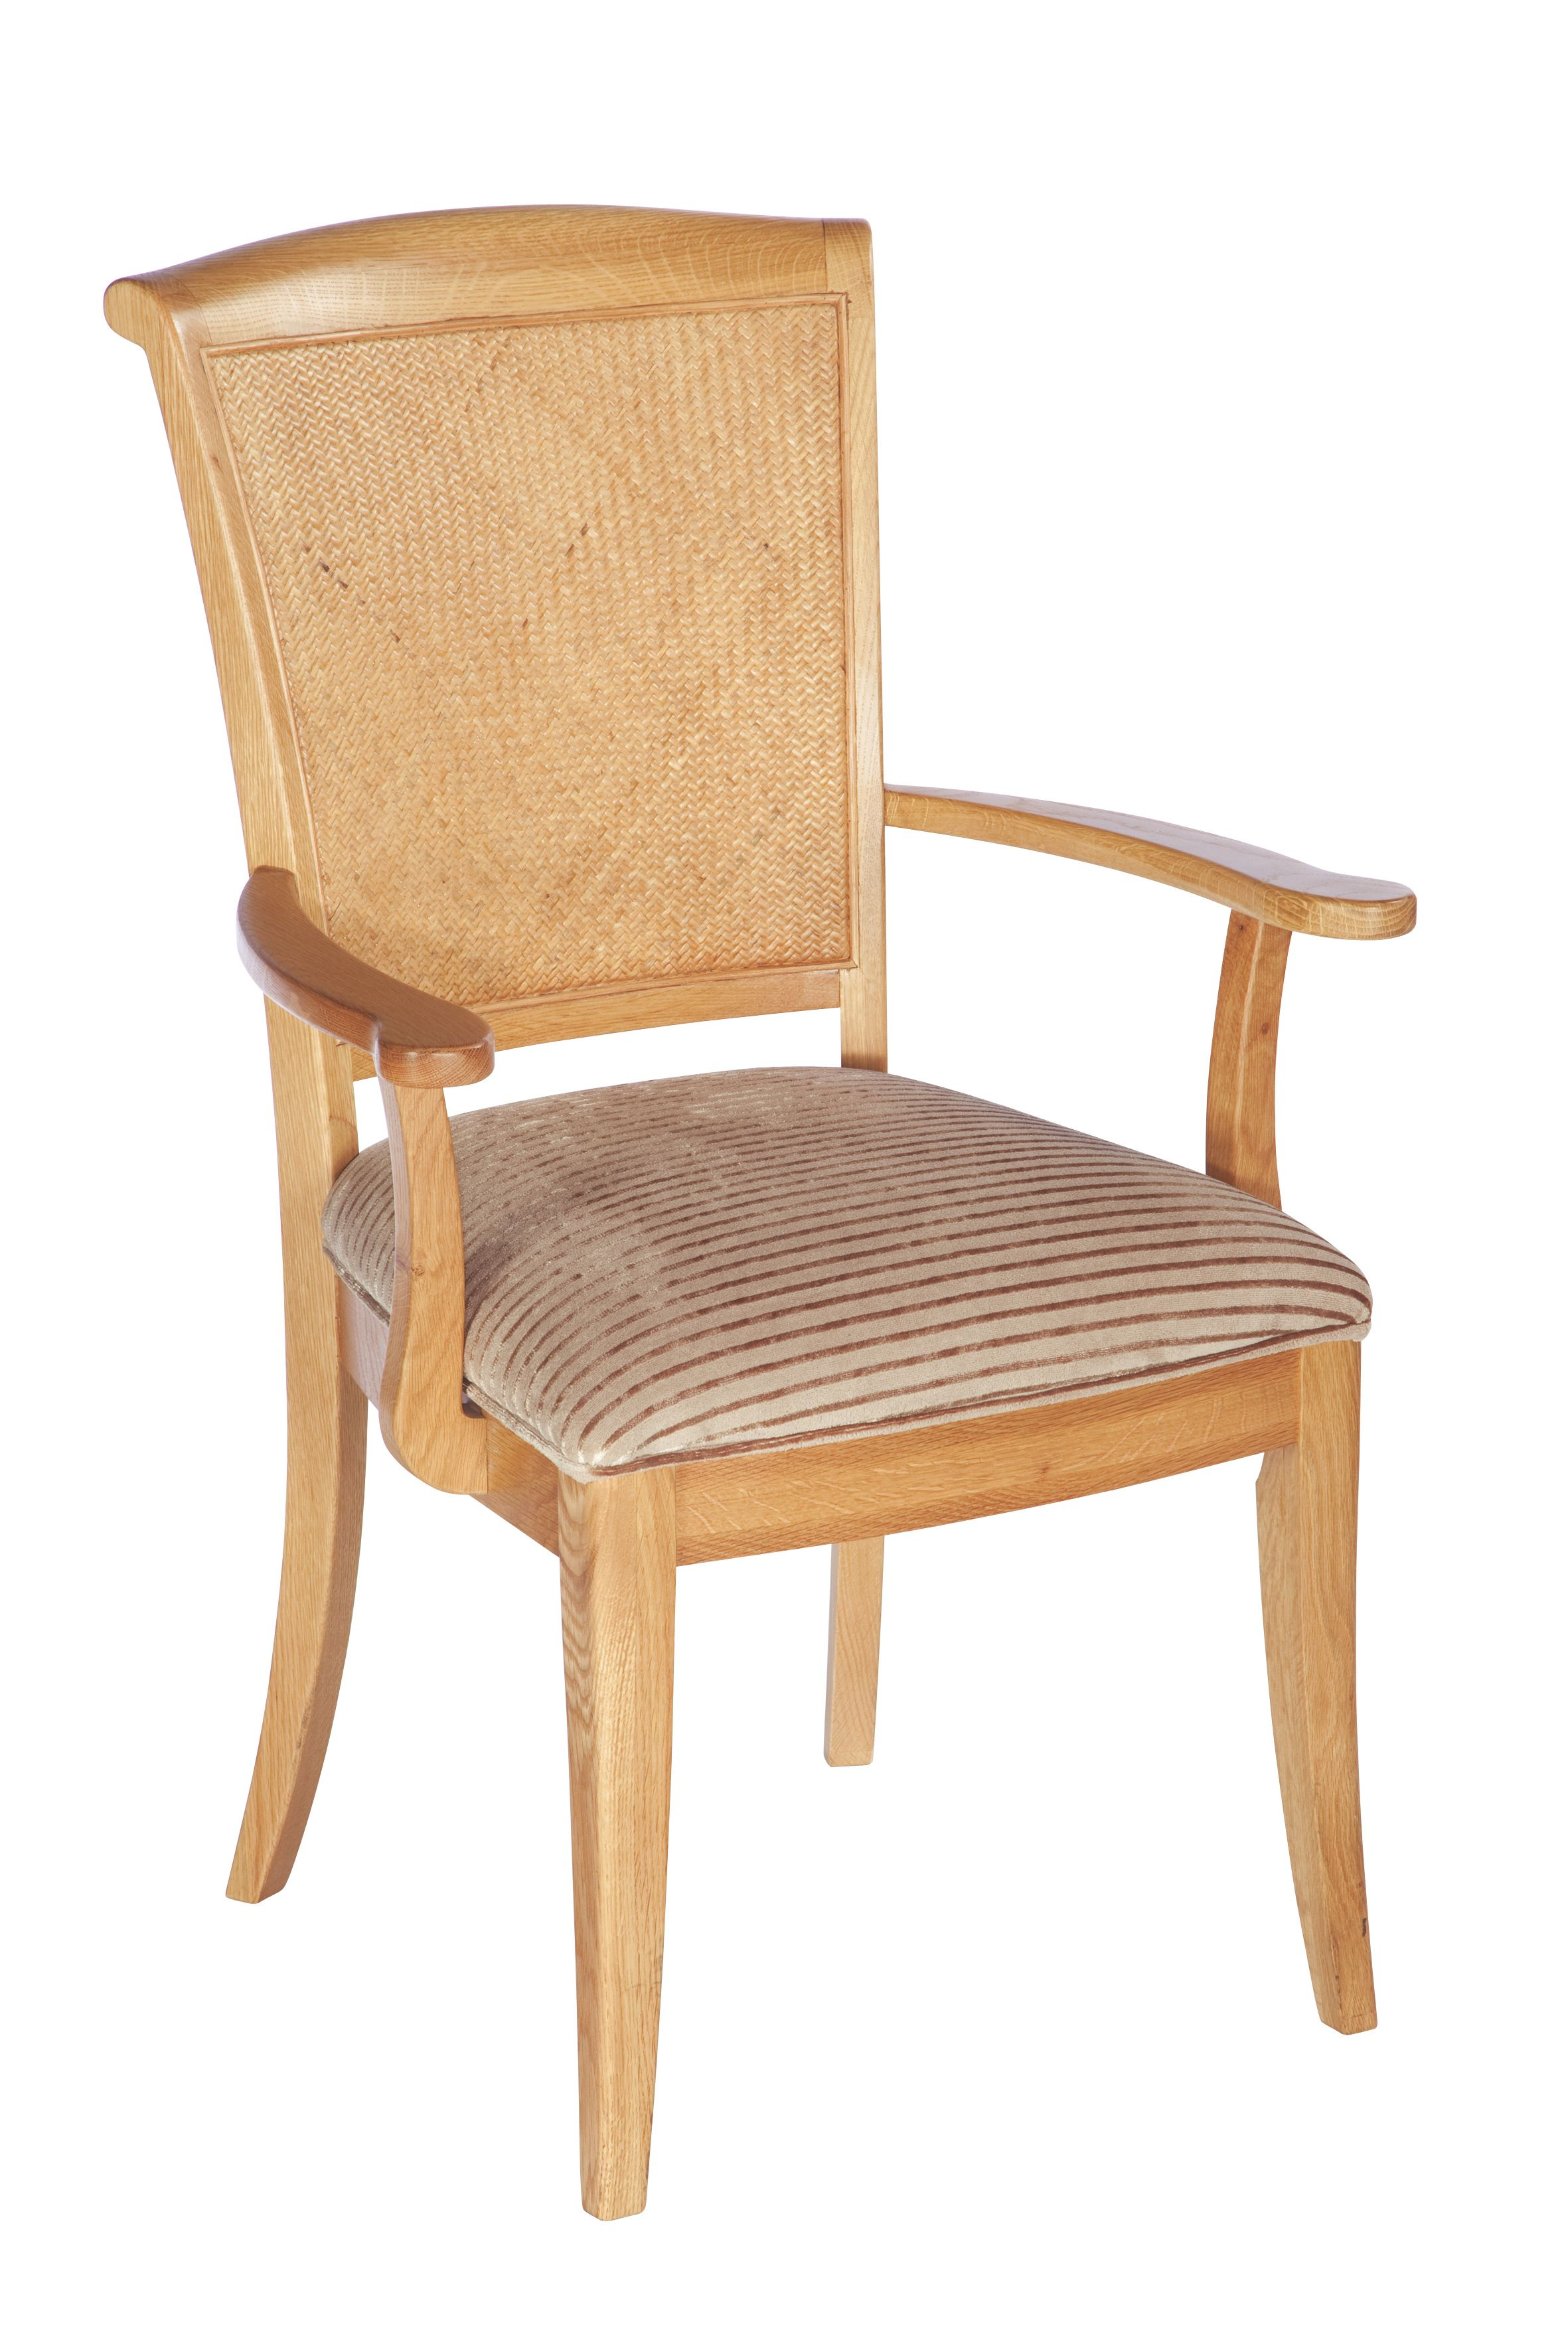 Nora carver chair pair